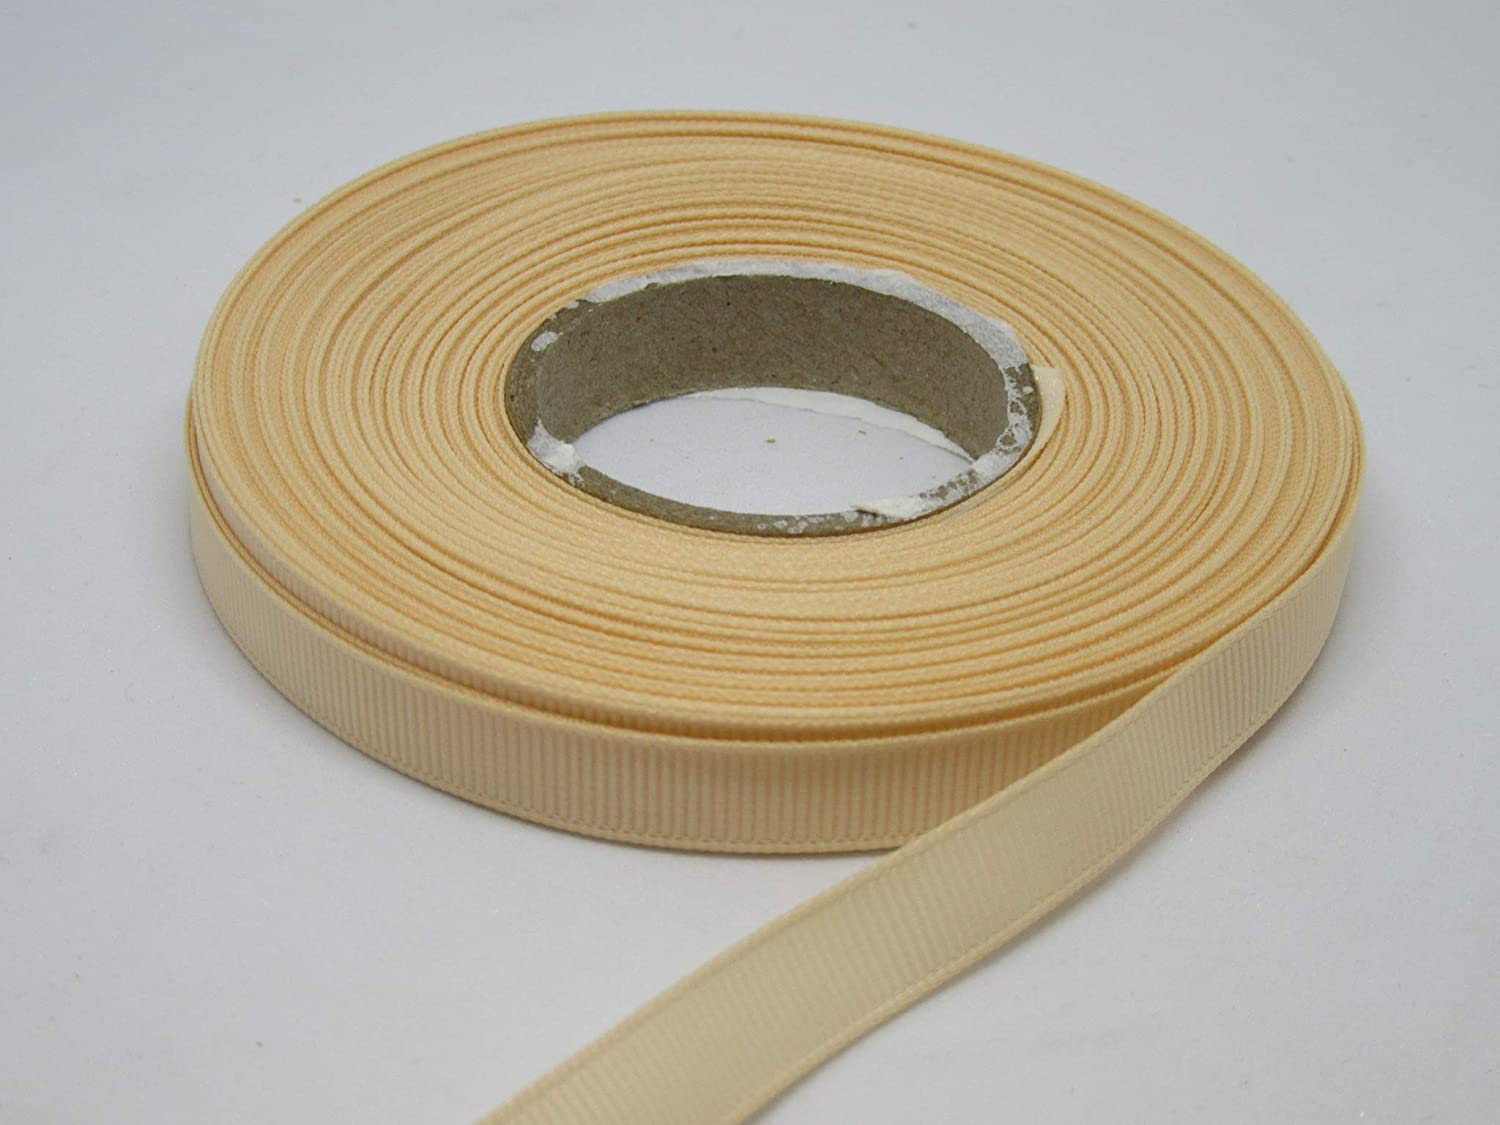 Beautiful Ribbon 1 Rollo de Cinta de 10mm Grosgrain x 20 Metros Desnudo Beige Claro de Doble Cara Acanalado 10 mm